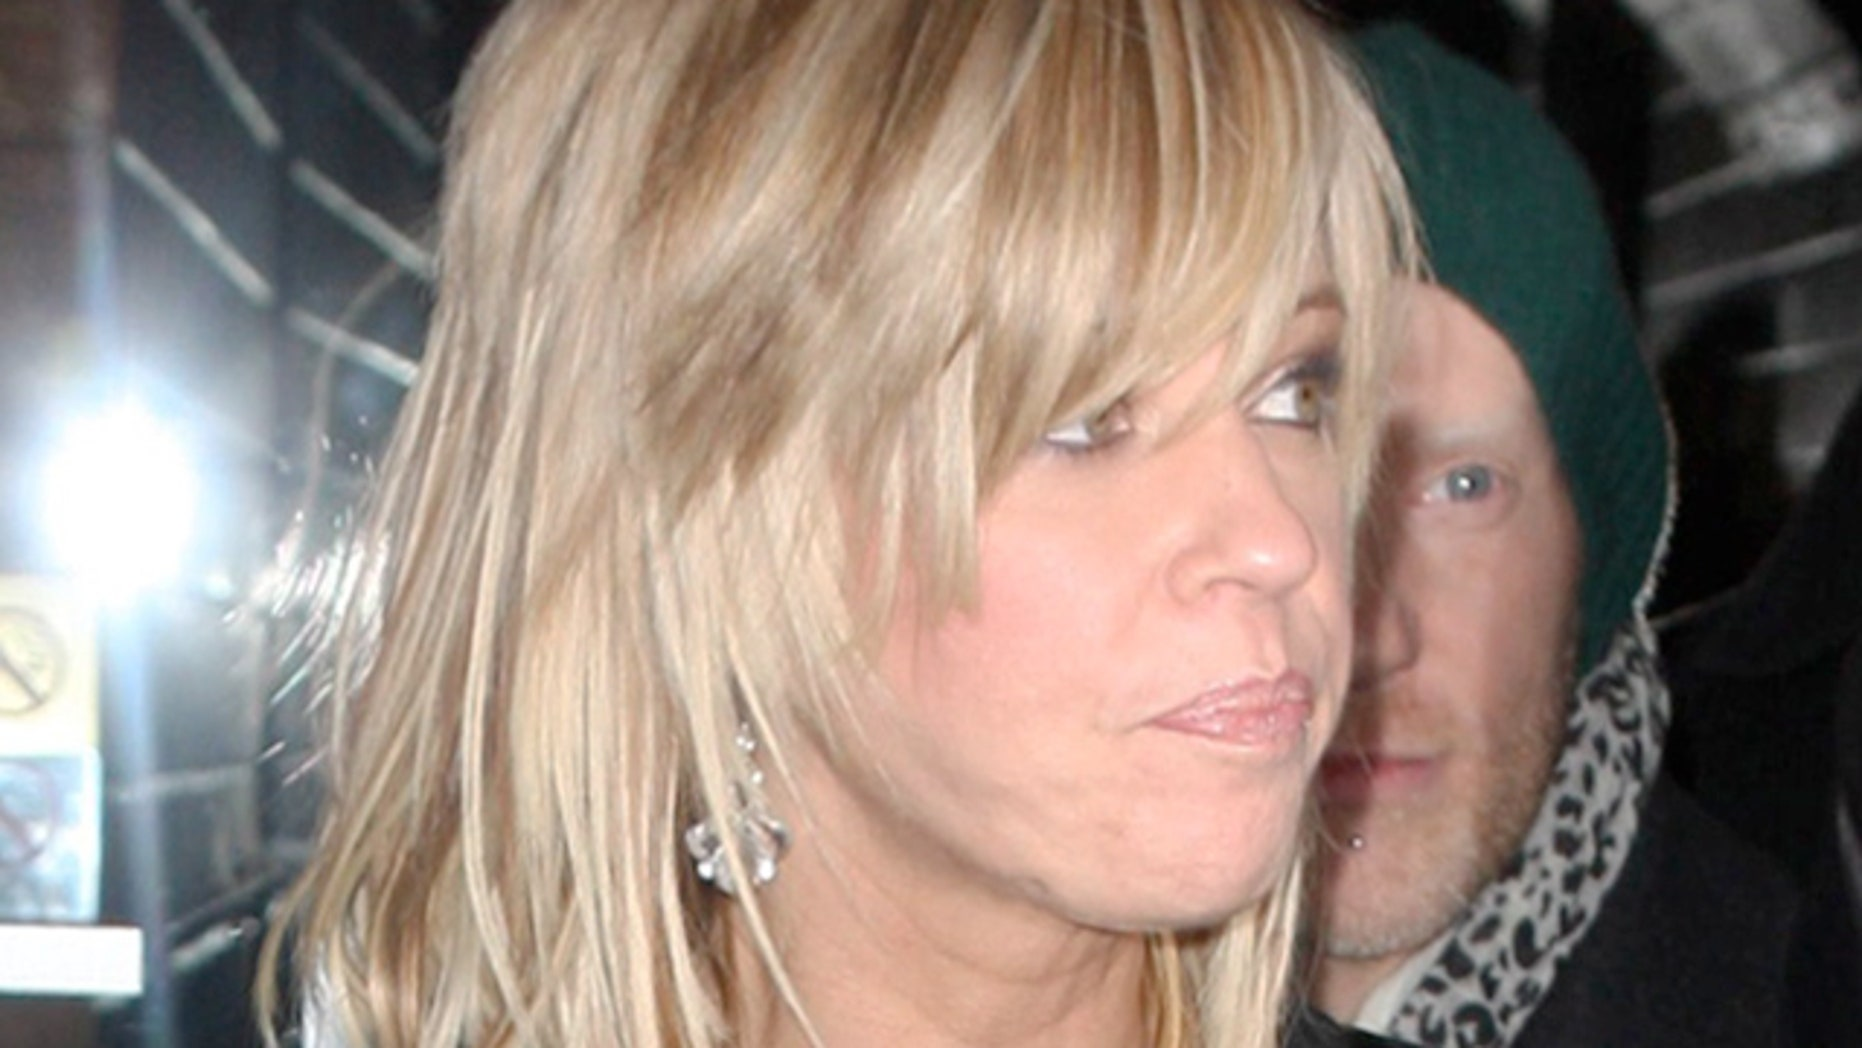 Kate Gosselin leaving Butter after dinner then heads to SPIN NEWYORK.  February 5, 2010. X17online.com exclusive